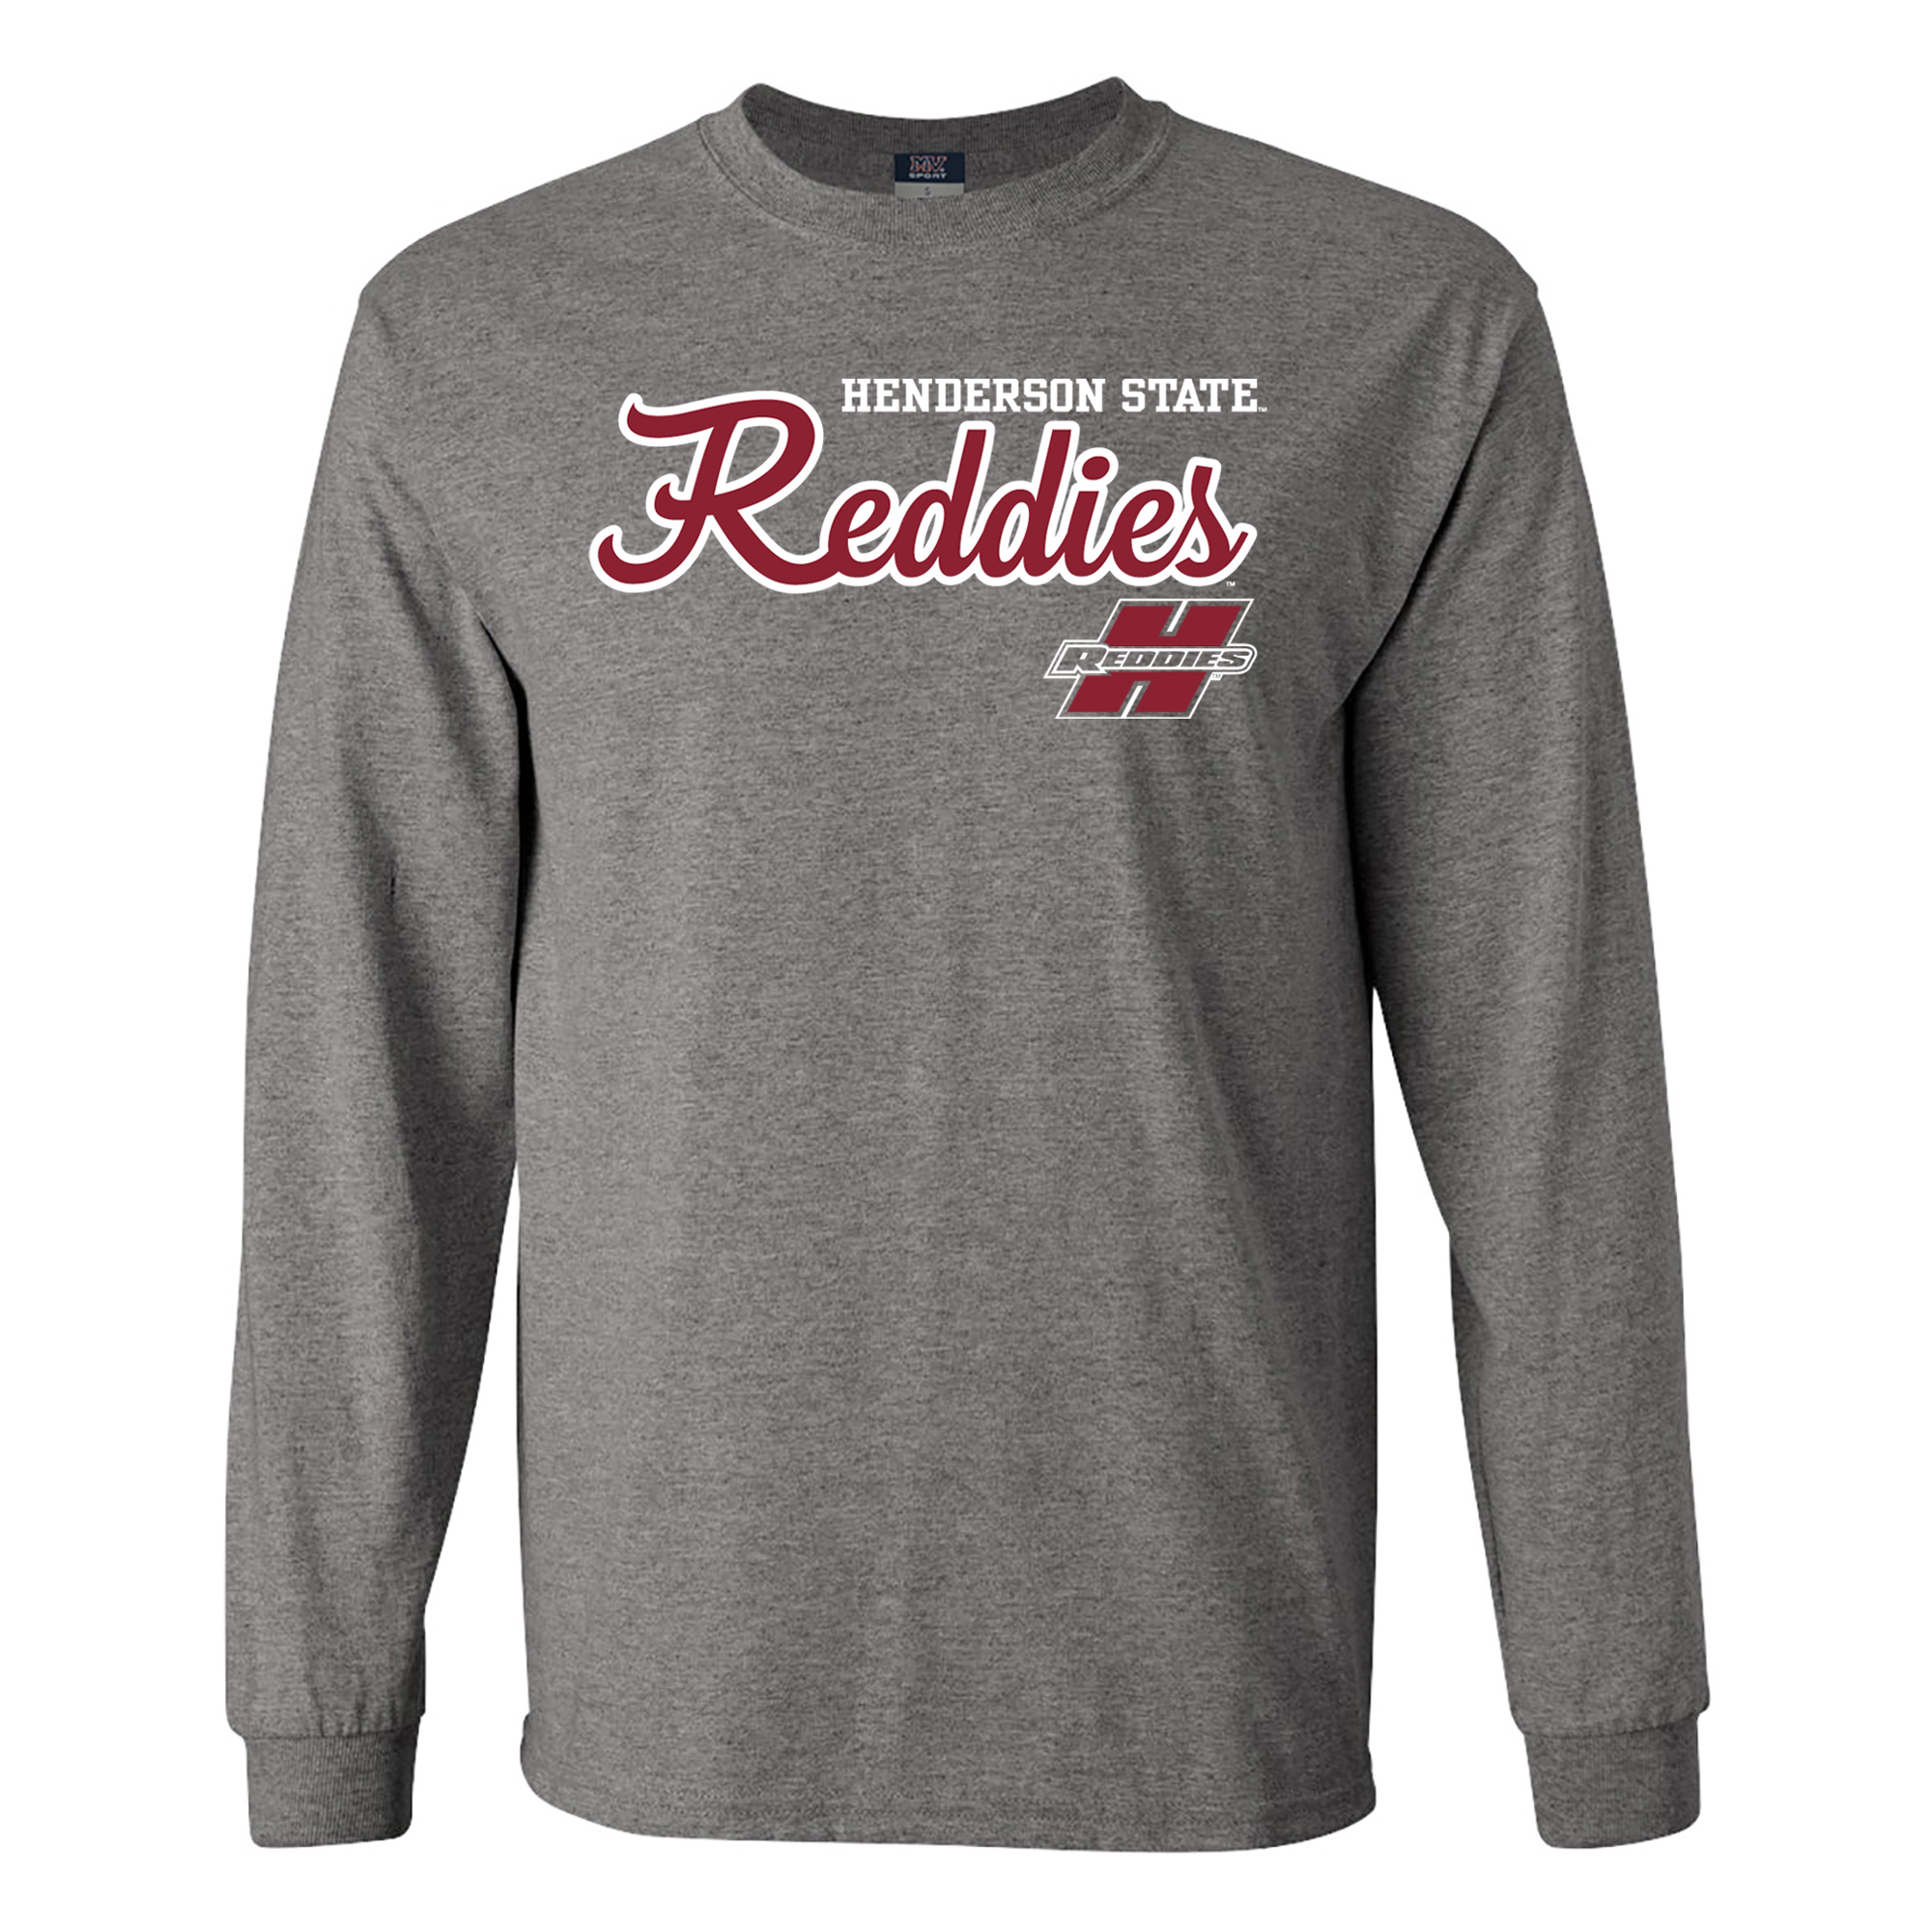 Henderson State Reddies Classic Long Sleeve T-Shirt